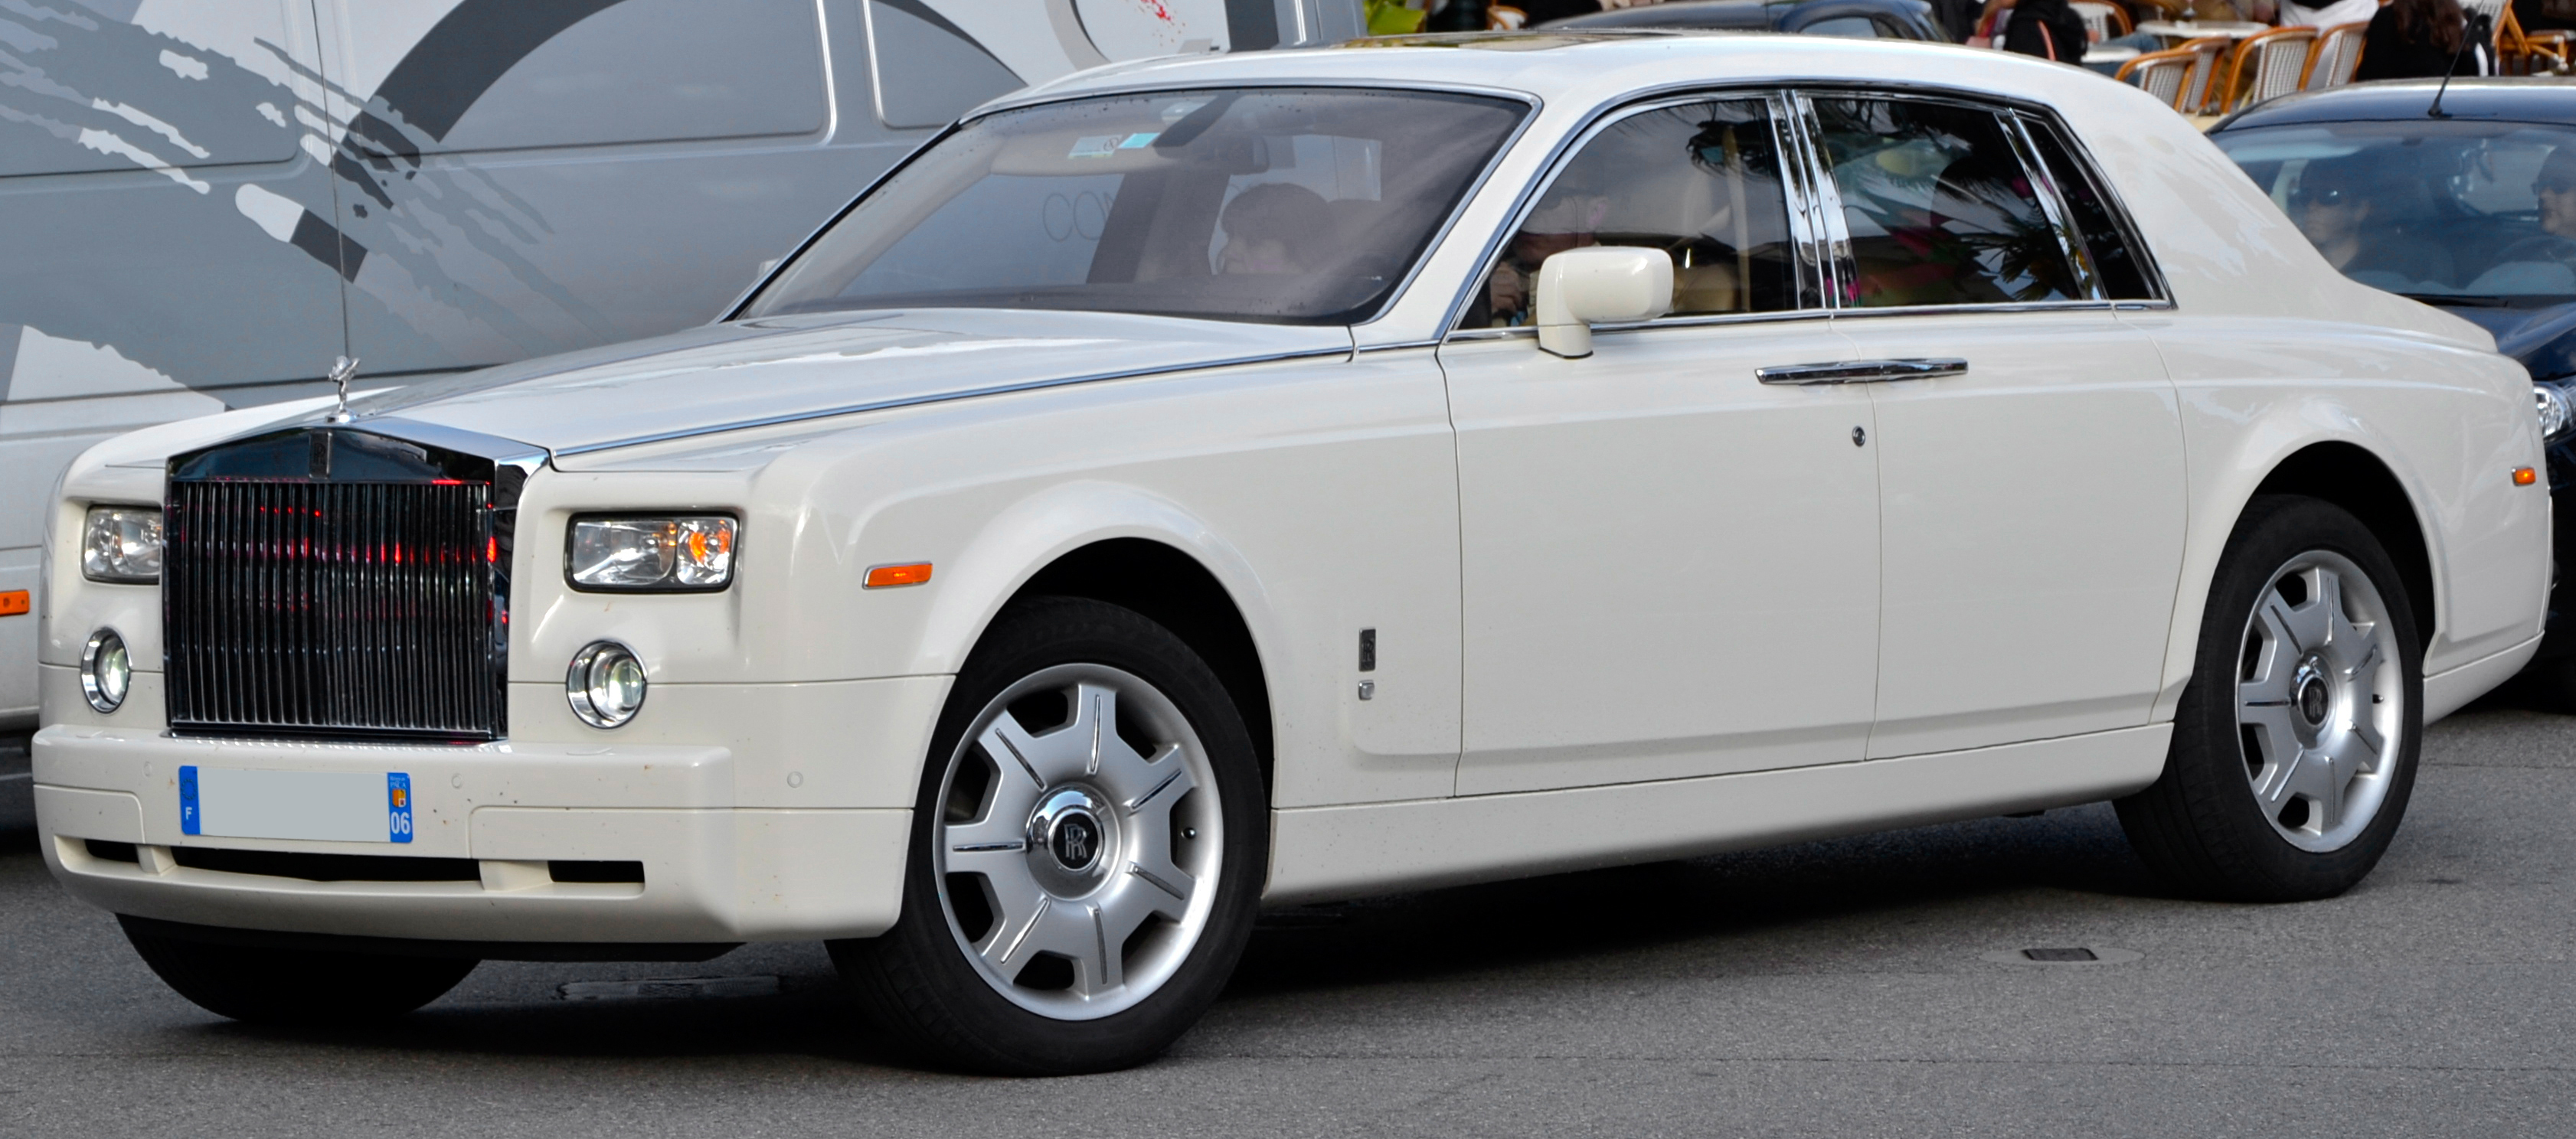 Rolls Royce Phantom Vii Wikipedia